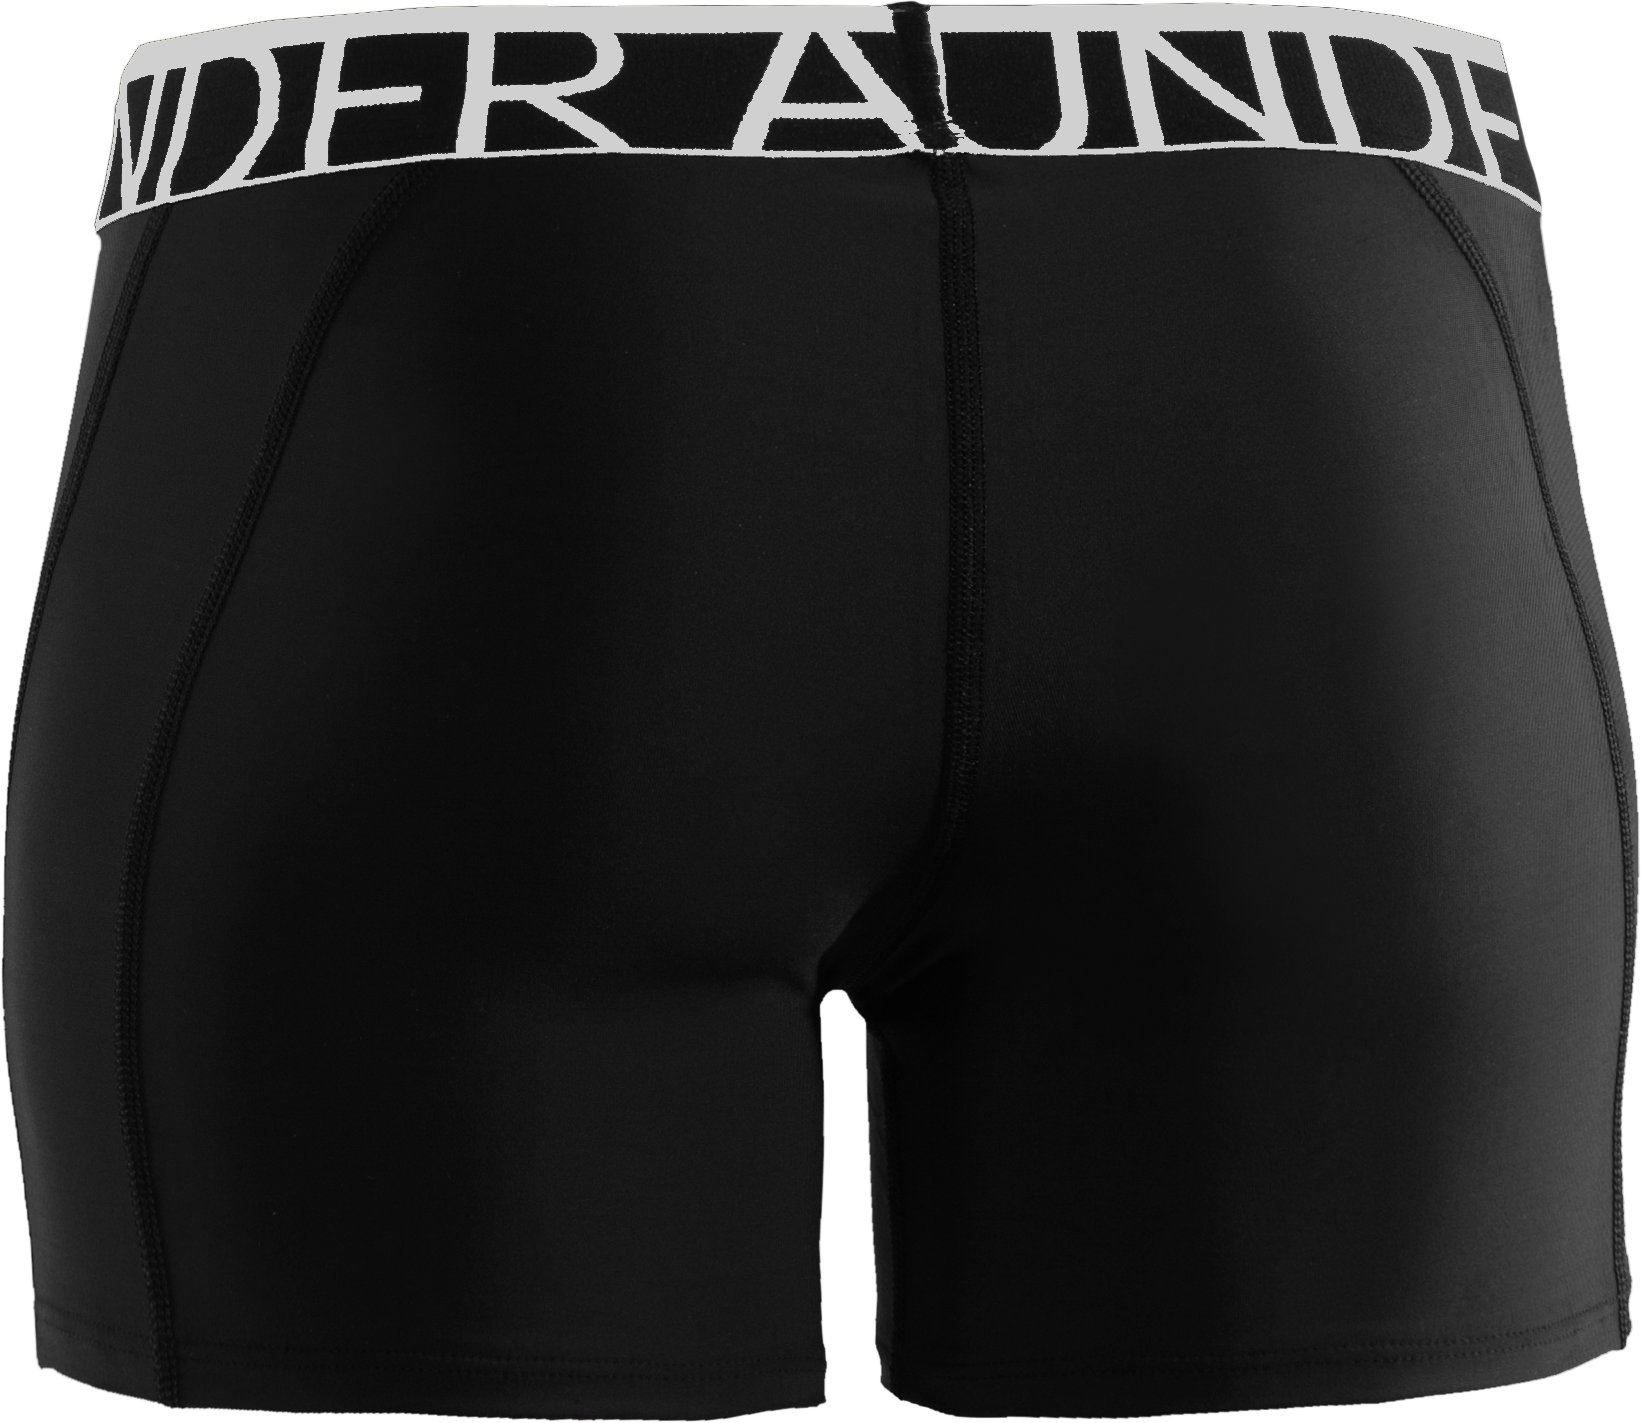 "Women's UA Still Gotta Have It 4"" Compression Shorts, Black , undefined"